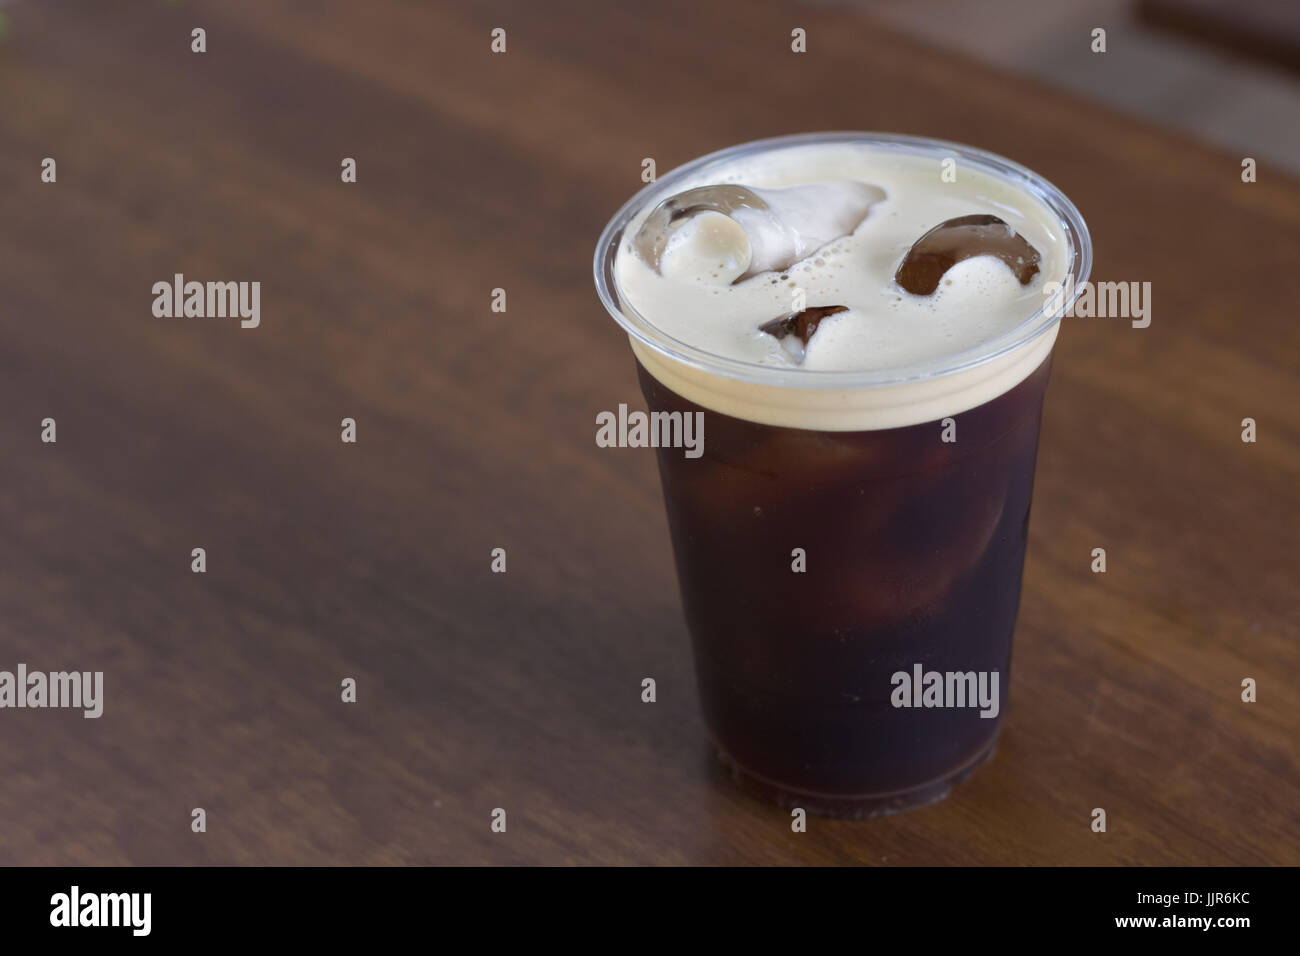 Sparkling Nitro cold brew coffee in take away cup ready to drink Stock Photo